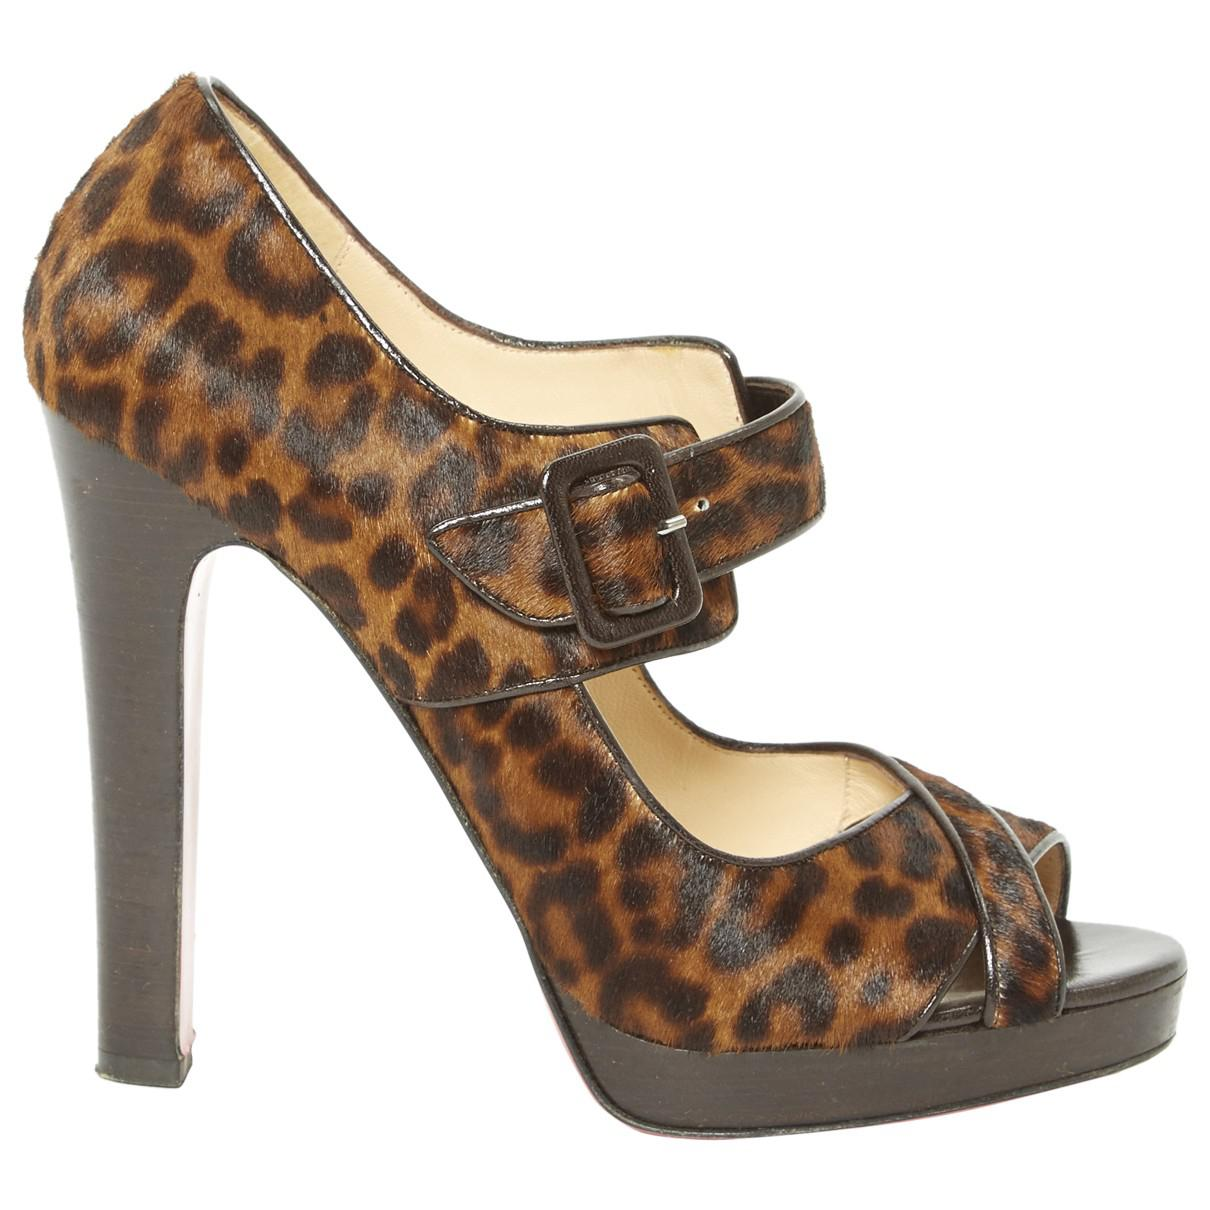 Pre-owned - Pony-style calfskin sandal Christian Louboutin